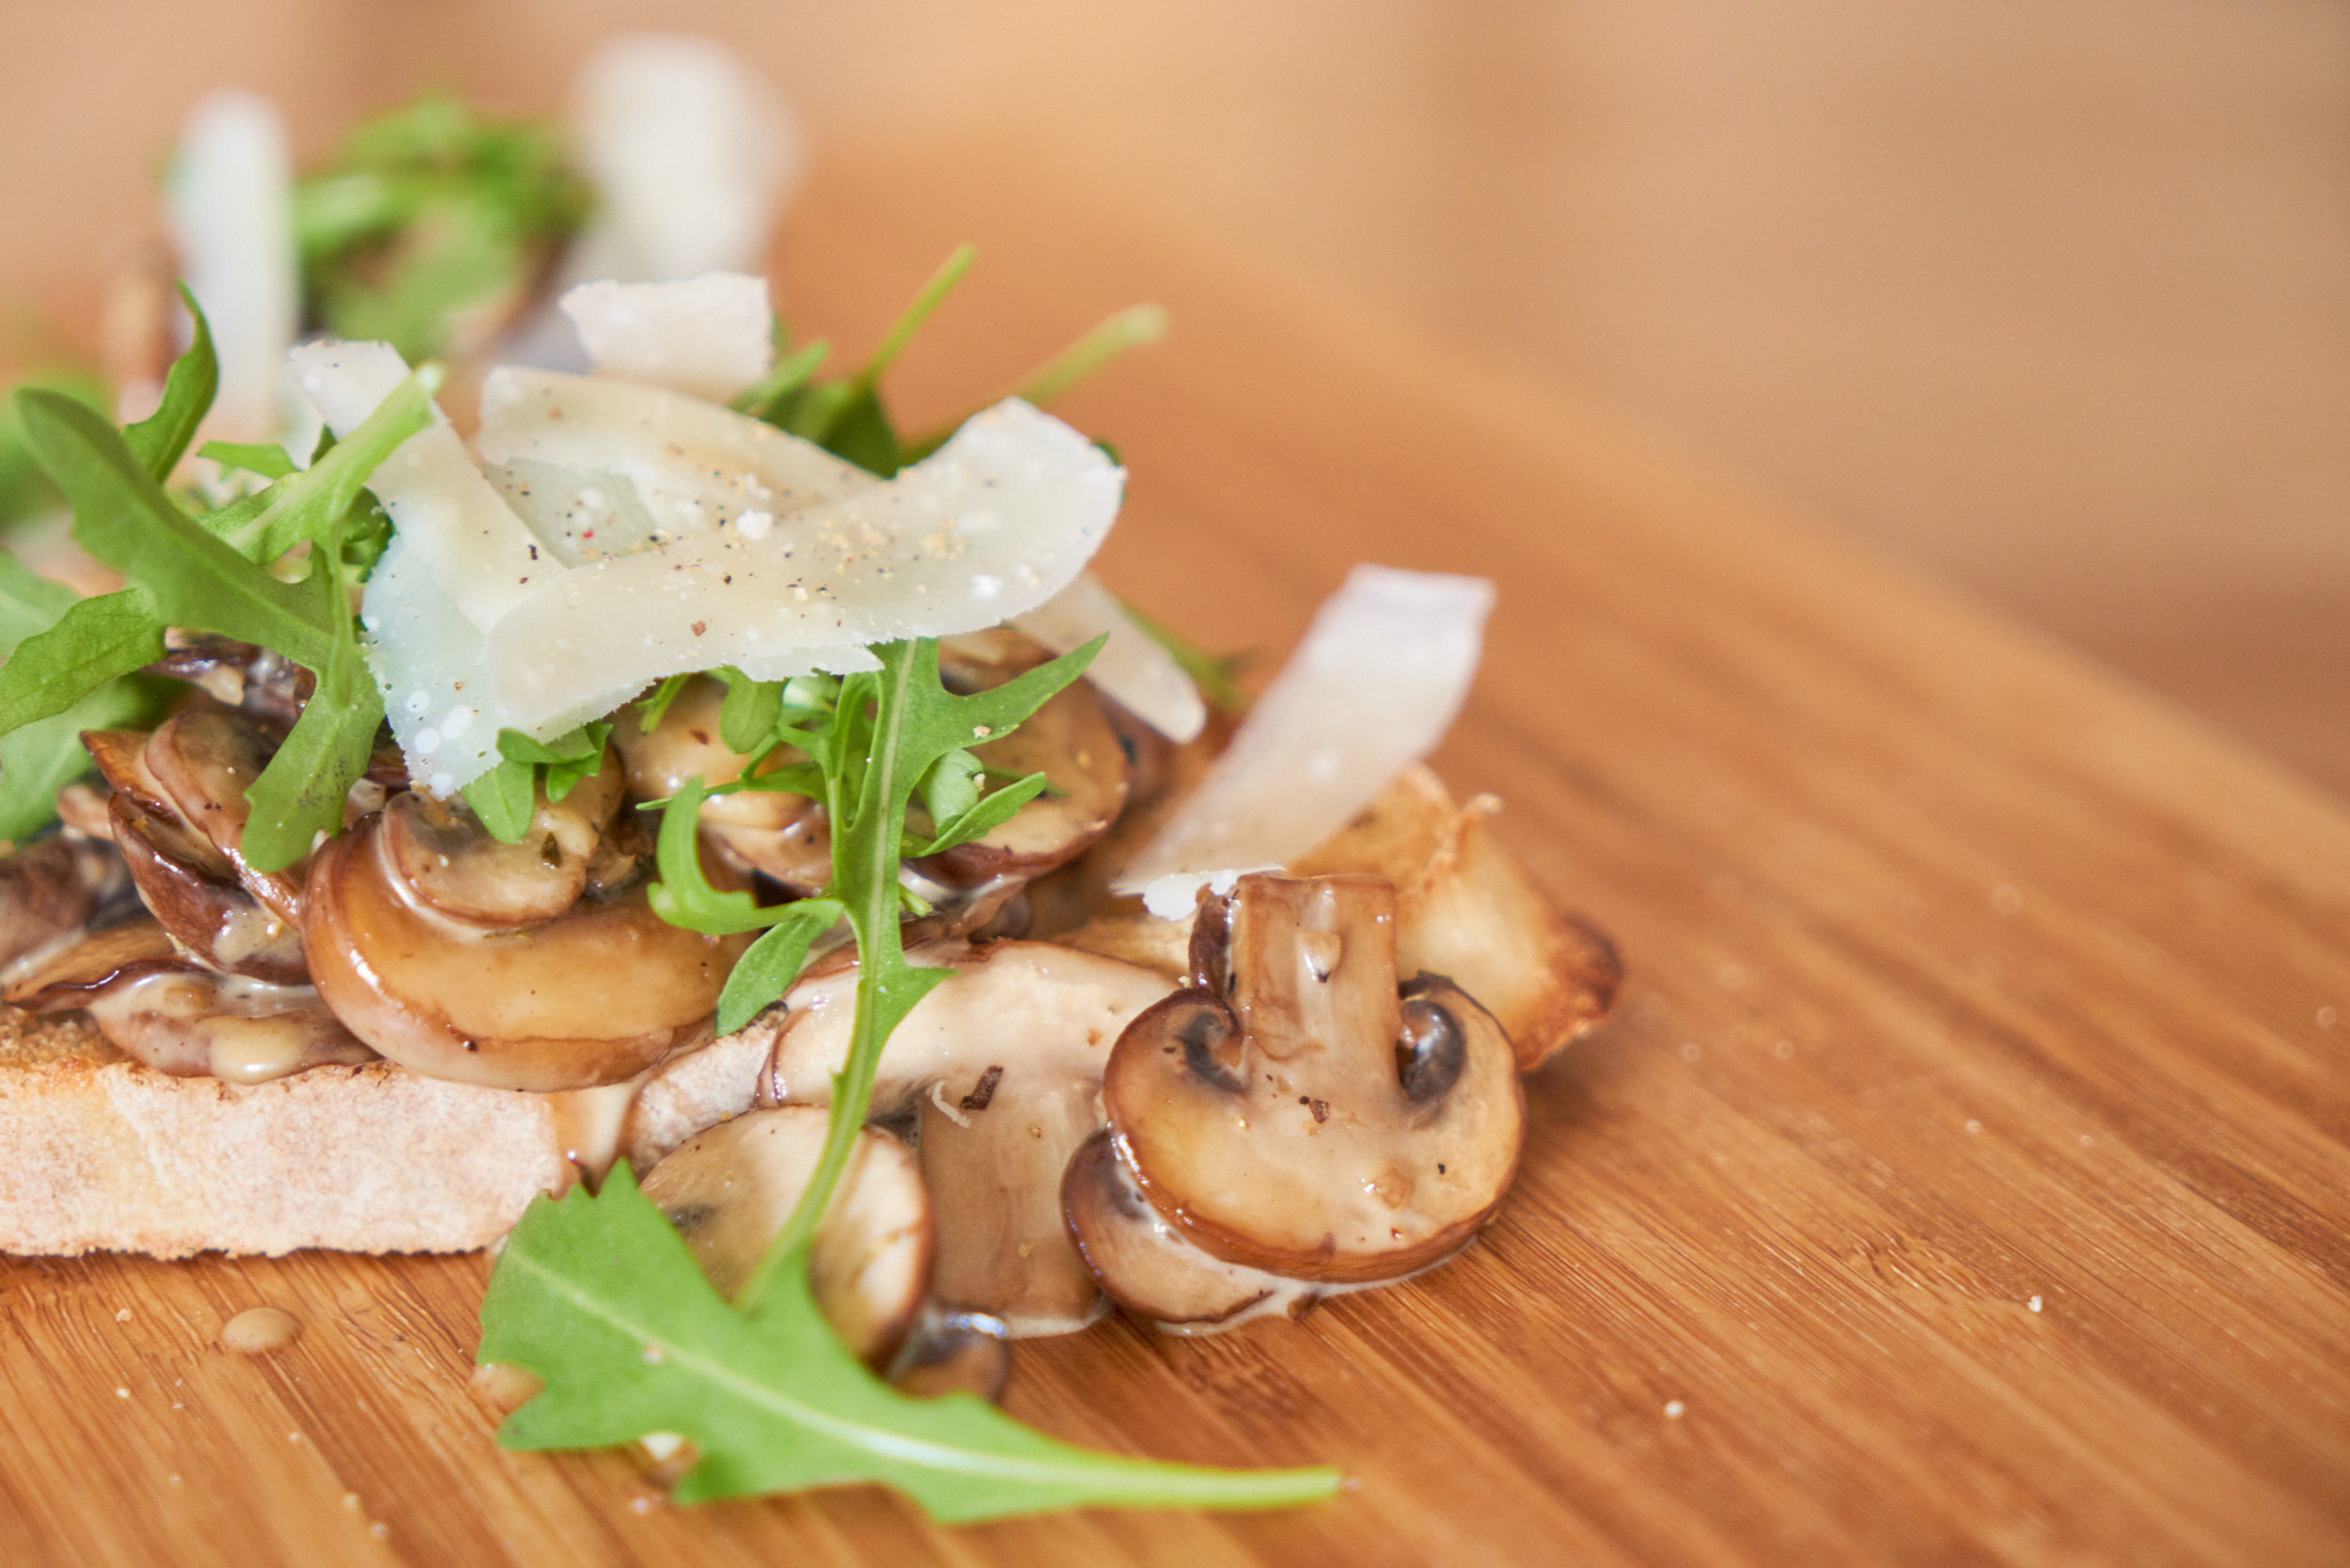 Creamy Mushrooms on Toast - or add rocket leaves and parmesan to take it to the next level | In Carina's Kitchen